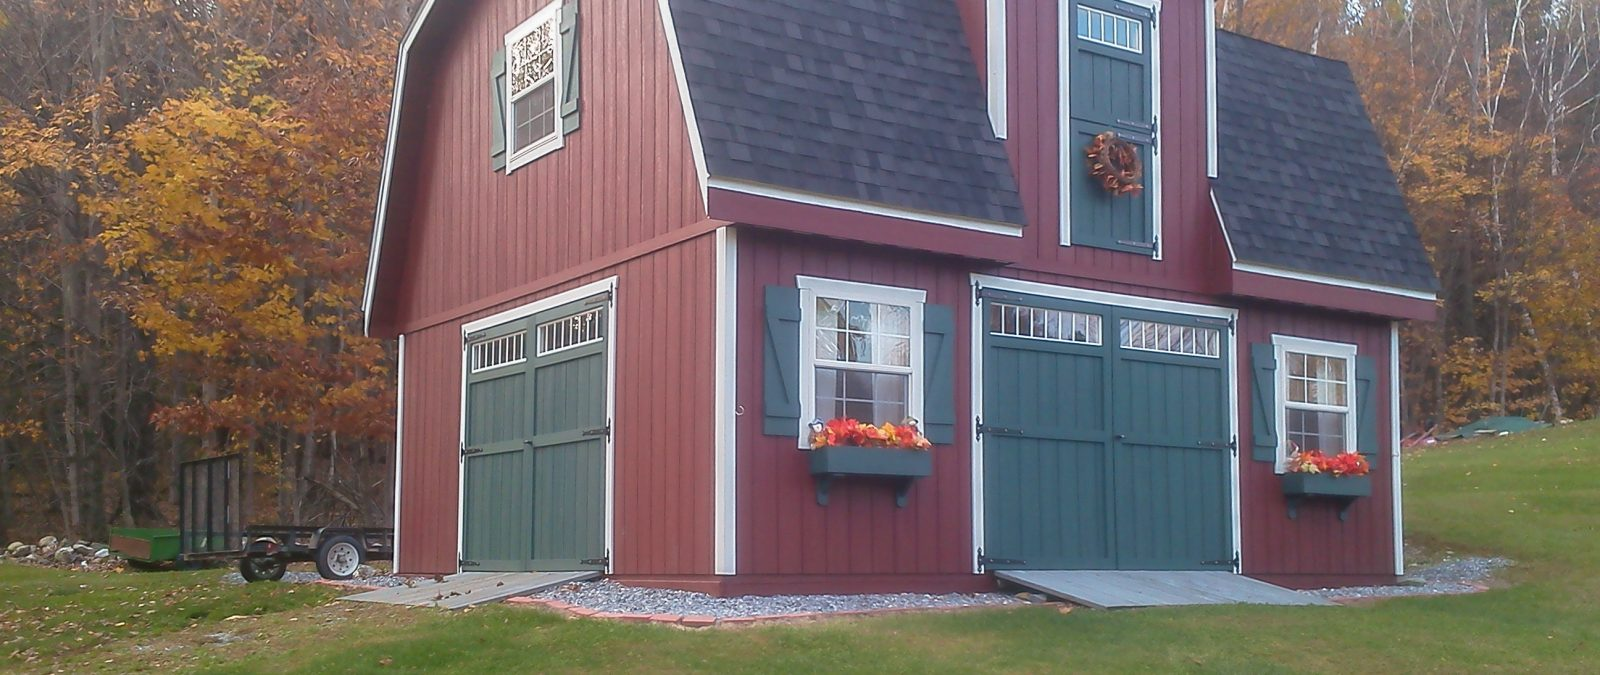 2 story shed house